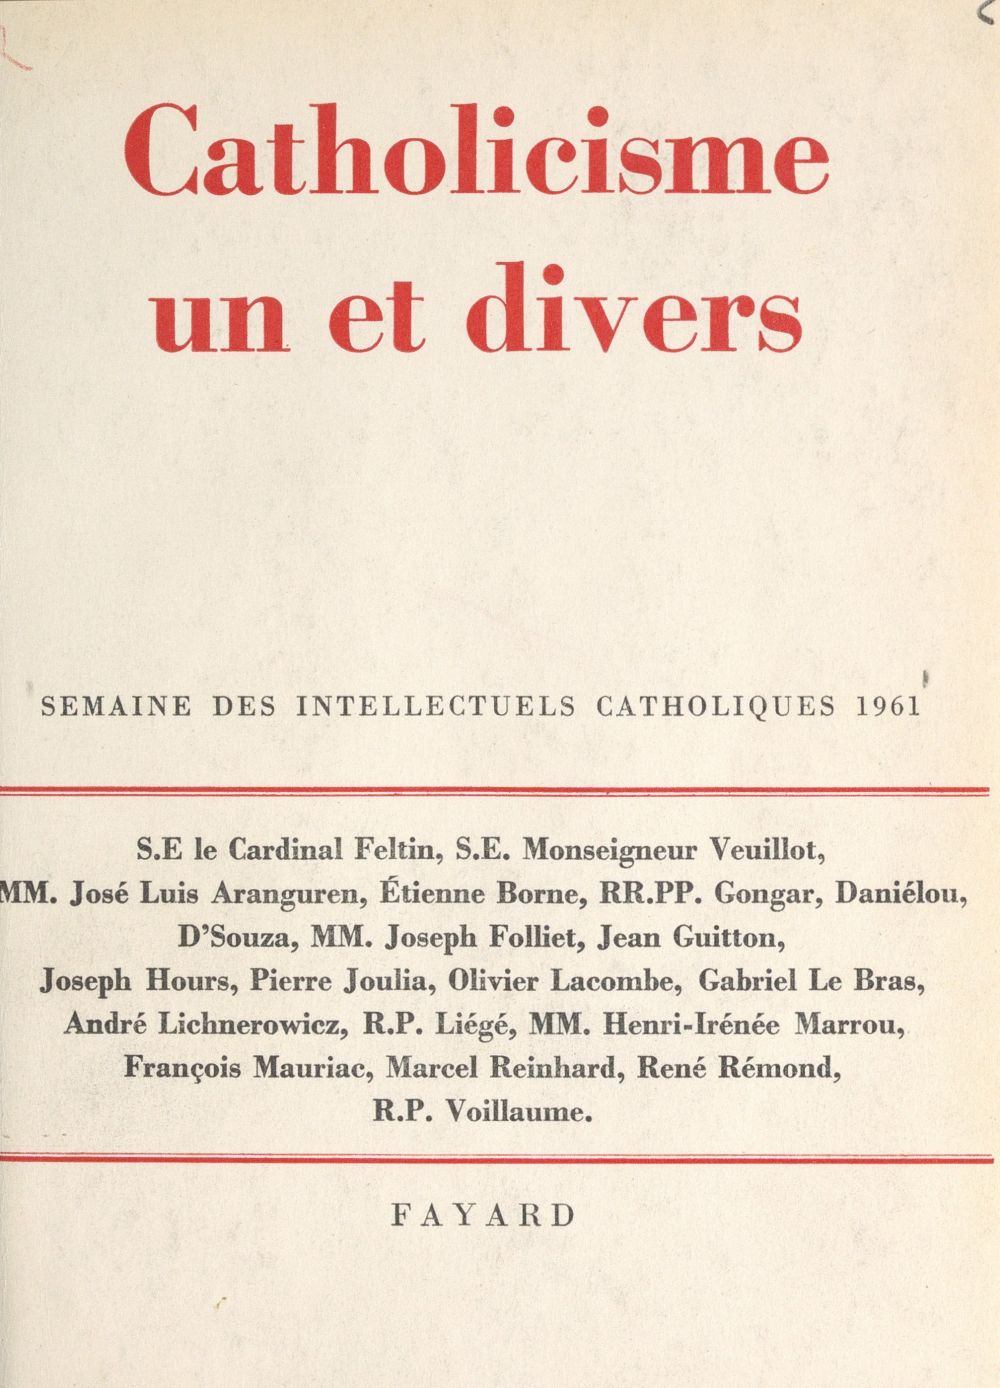 Catholicisme un et divers